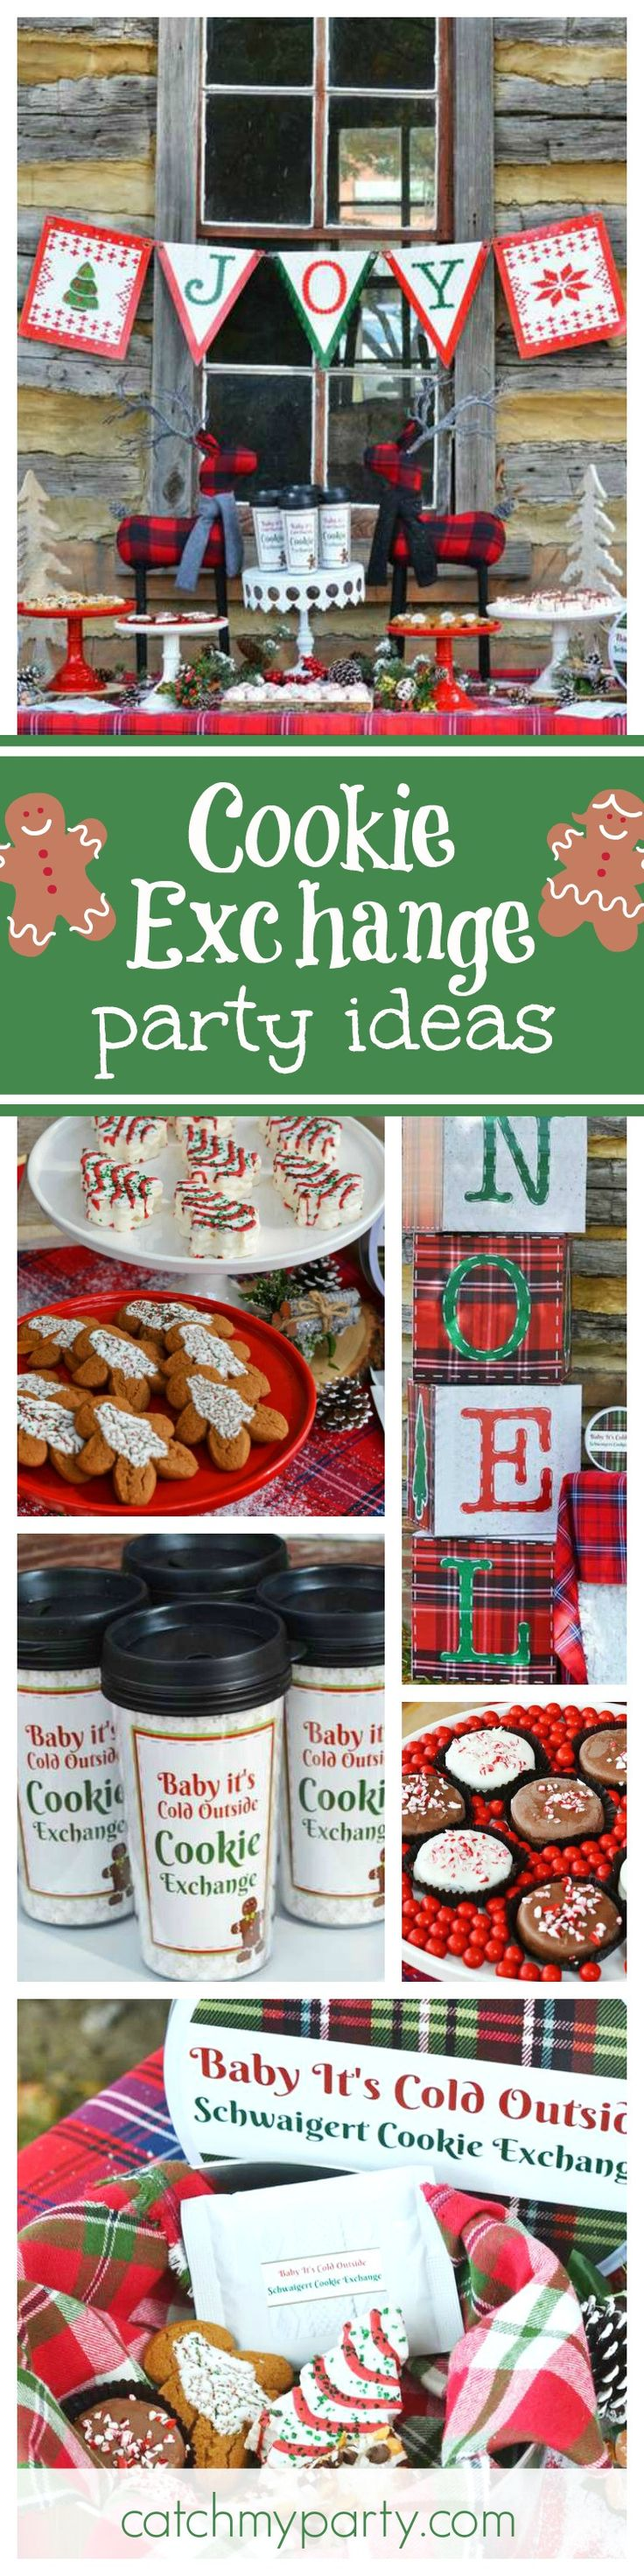 Hosting a baby shower and need some food ideas look no further since - The Holidays Are Here So If You Re Looking For Party Ideas For A Cookie